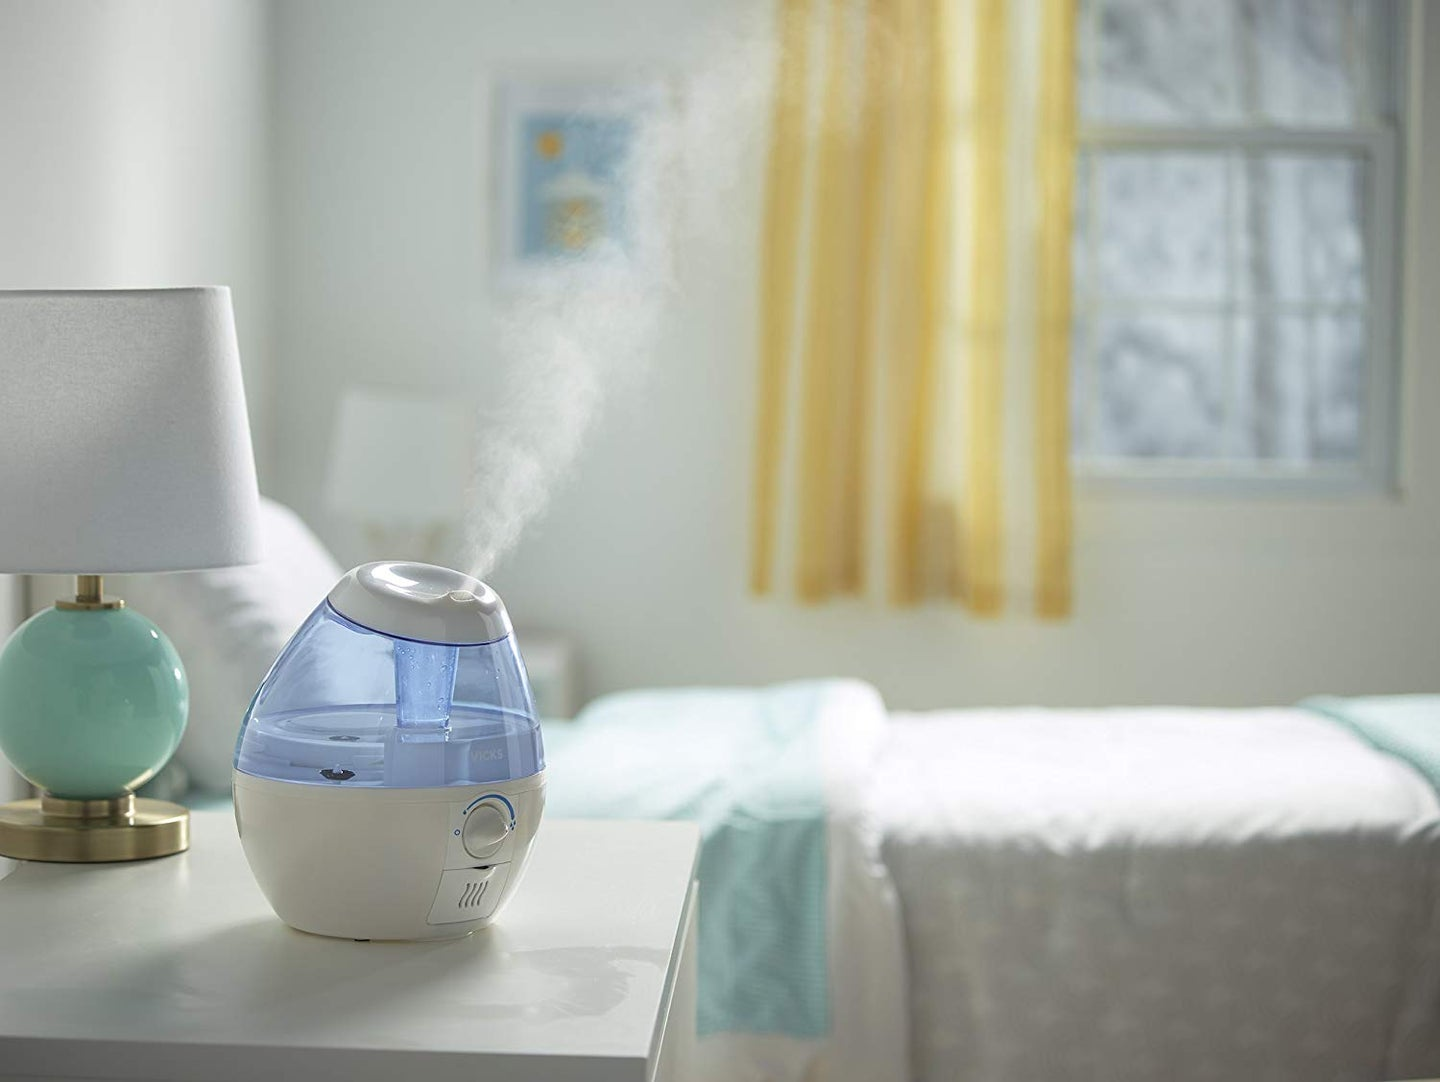 Top-notch humidifiers for keeping your home fresh and comfortable